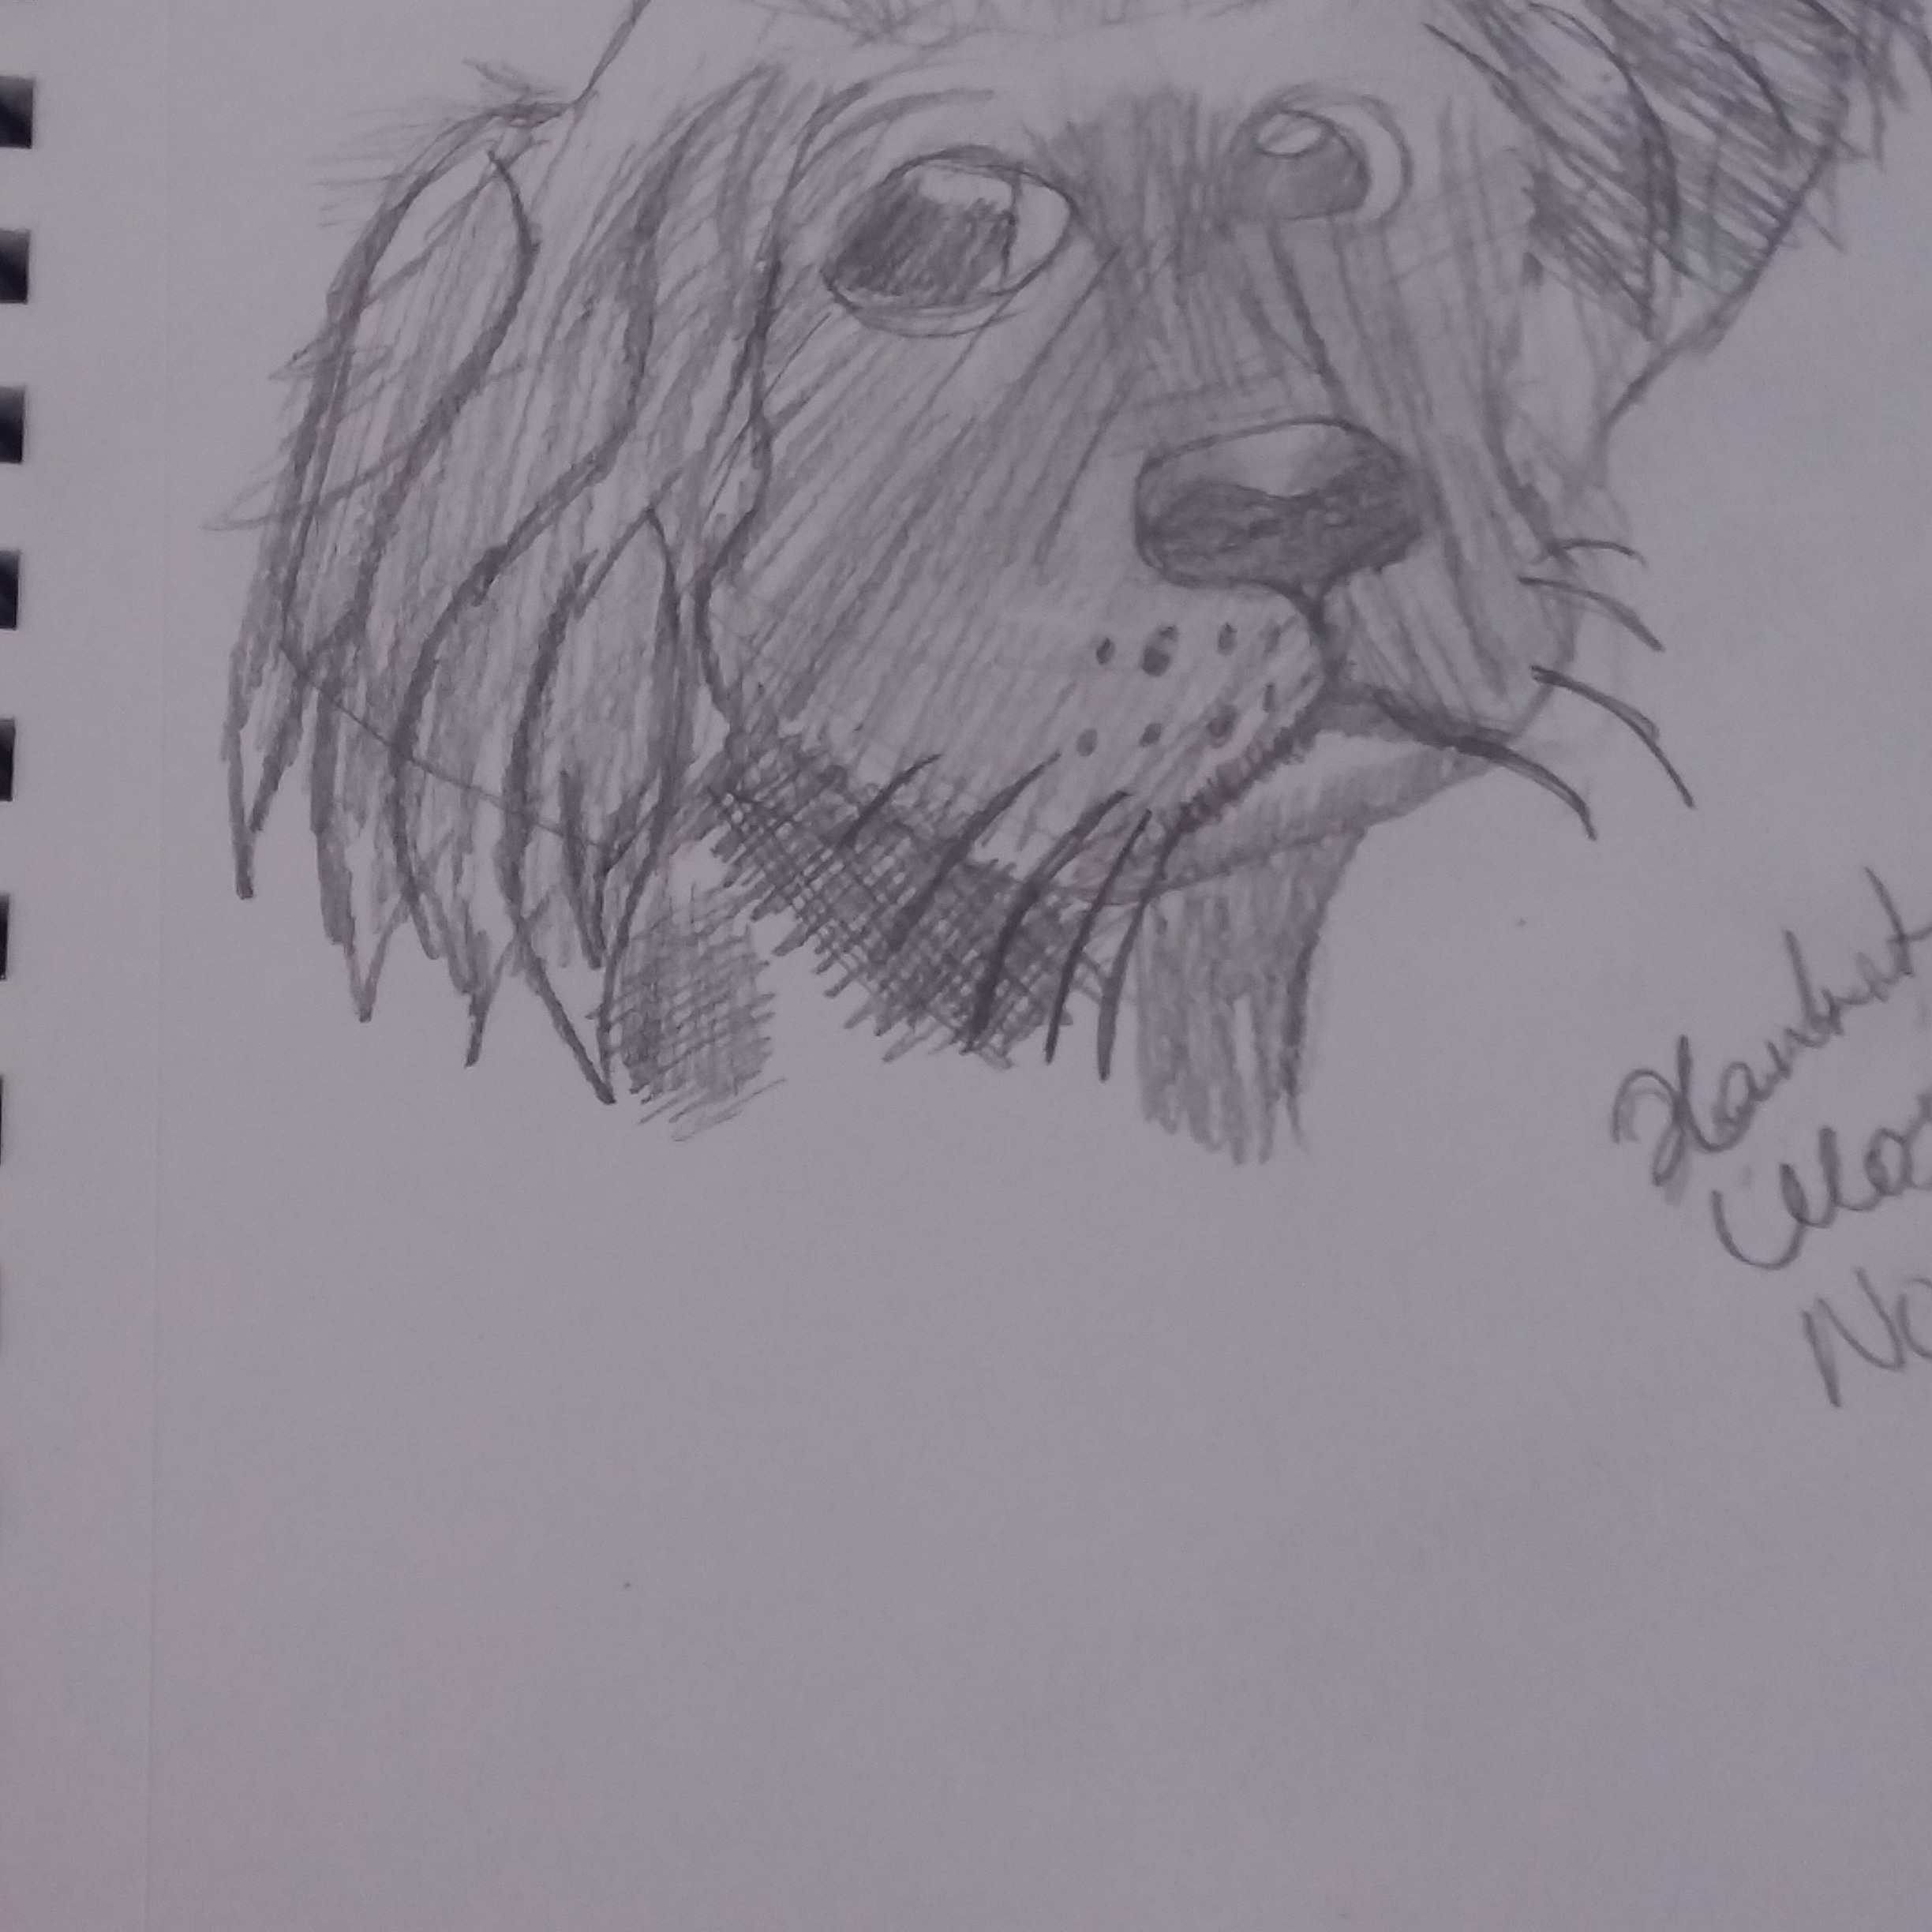 Dog sketch I did.